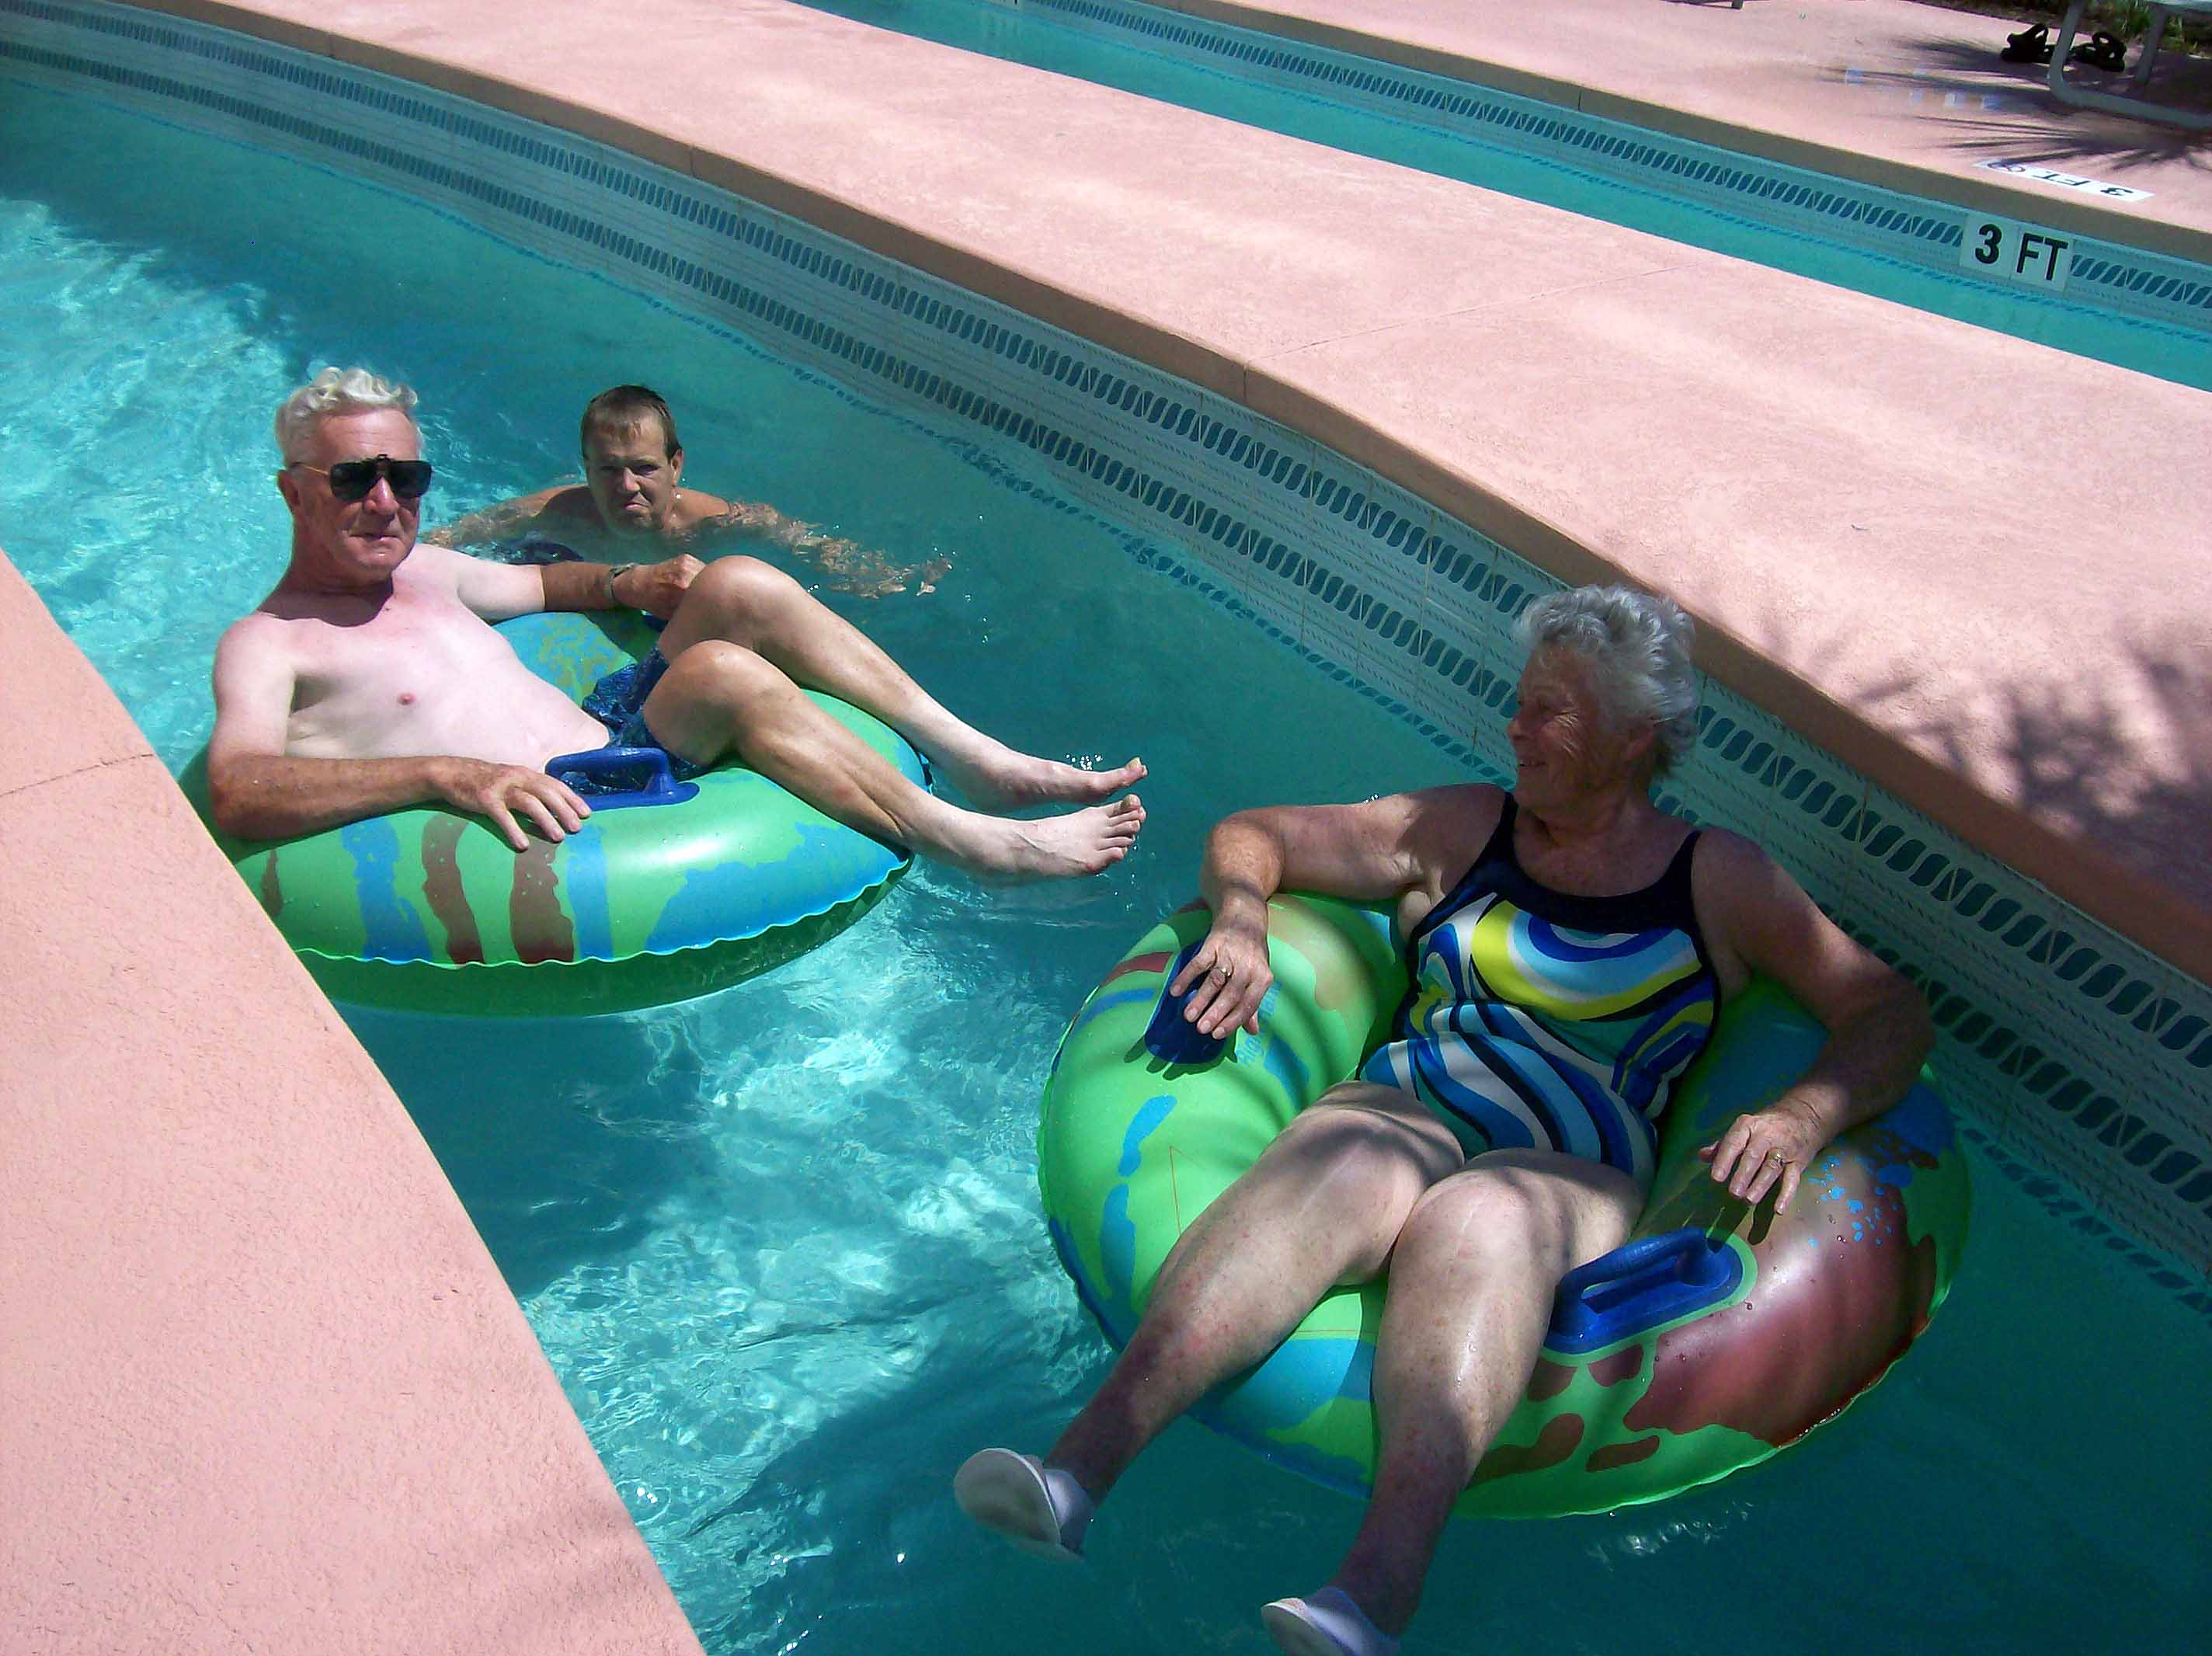 Not too old for the Lazy River